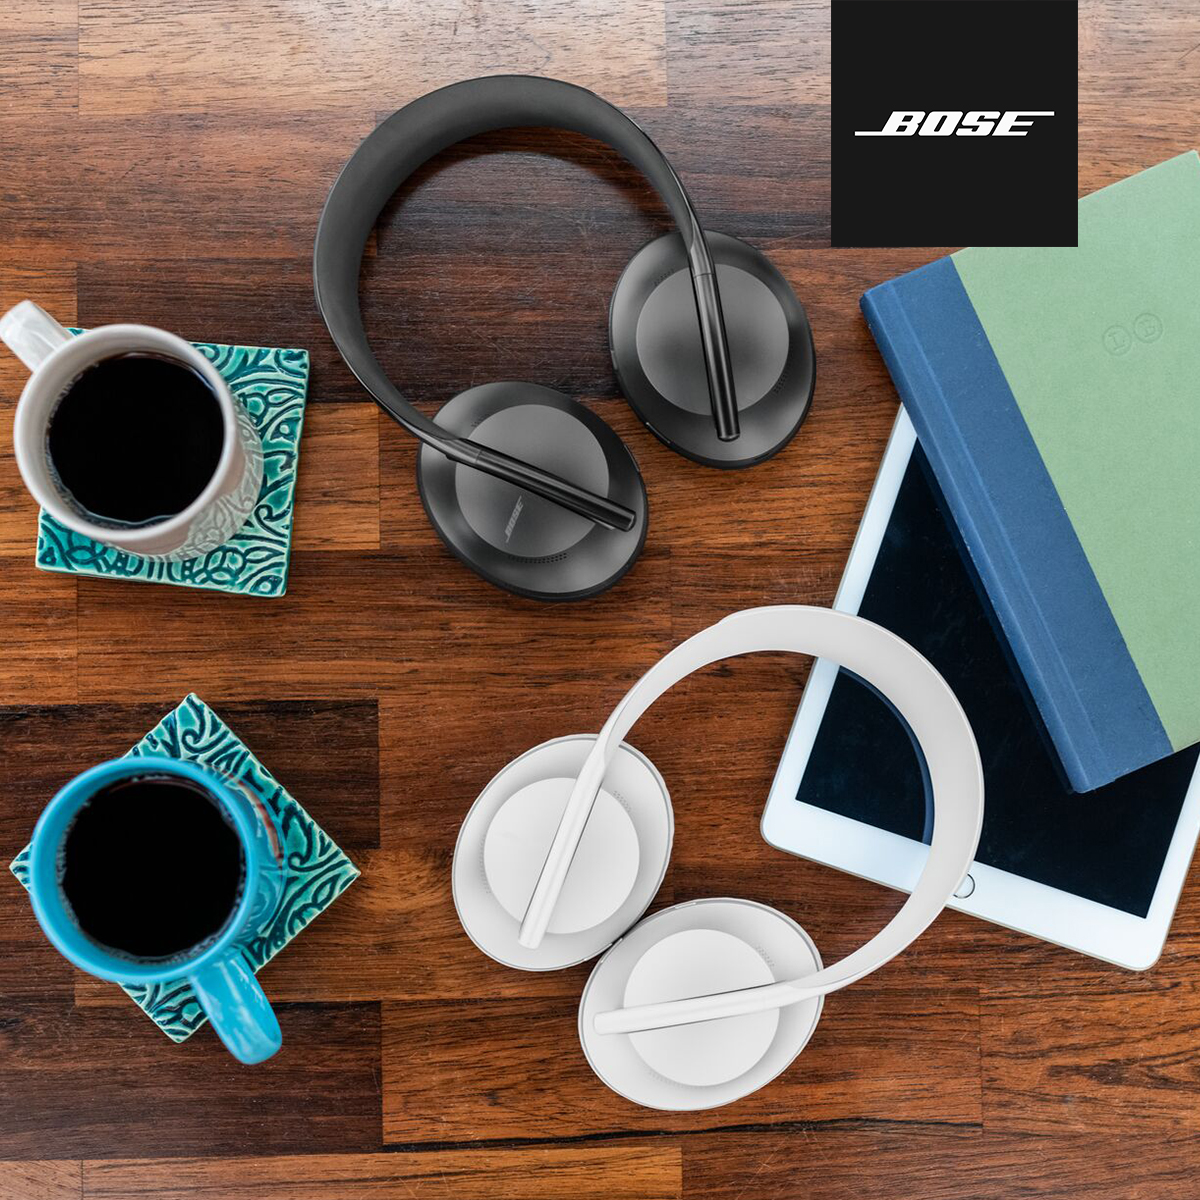 Bose - Up To 10% Off All Products